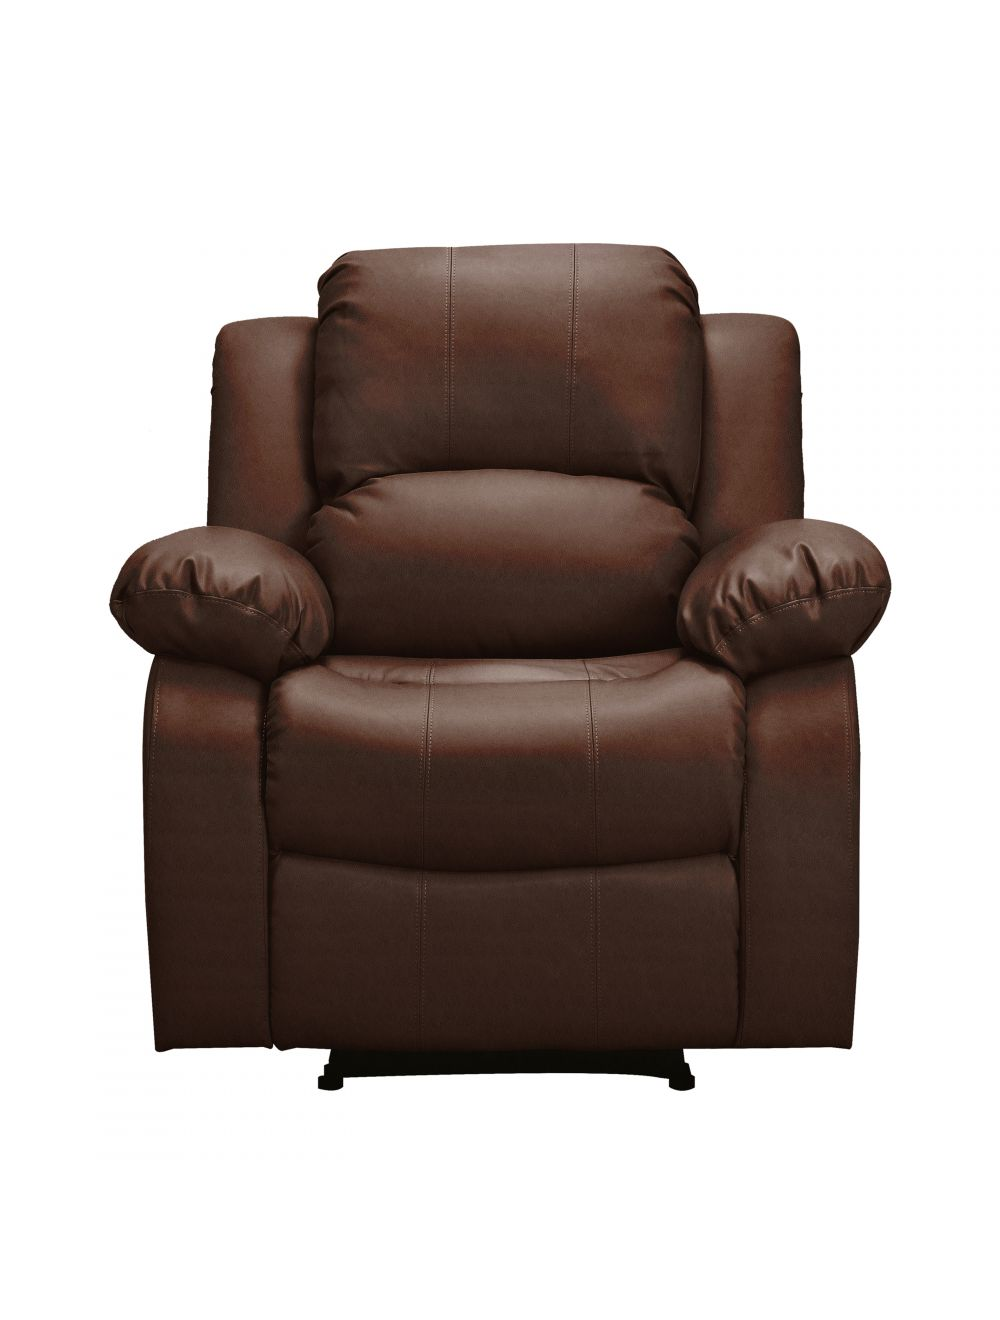 Prime Athon Leather 3 1 Seater Recliner Armchair And Sofa Set Mahogany Brown Theyellowbook Wood Chair Design Ideas Theyellowbookinfo